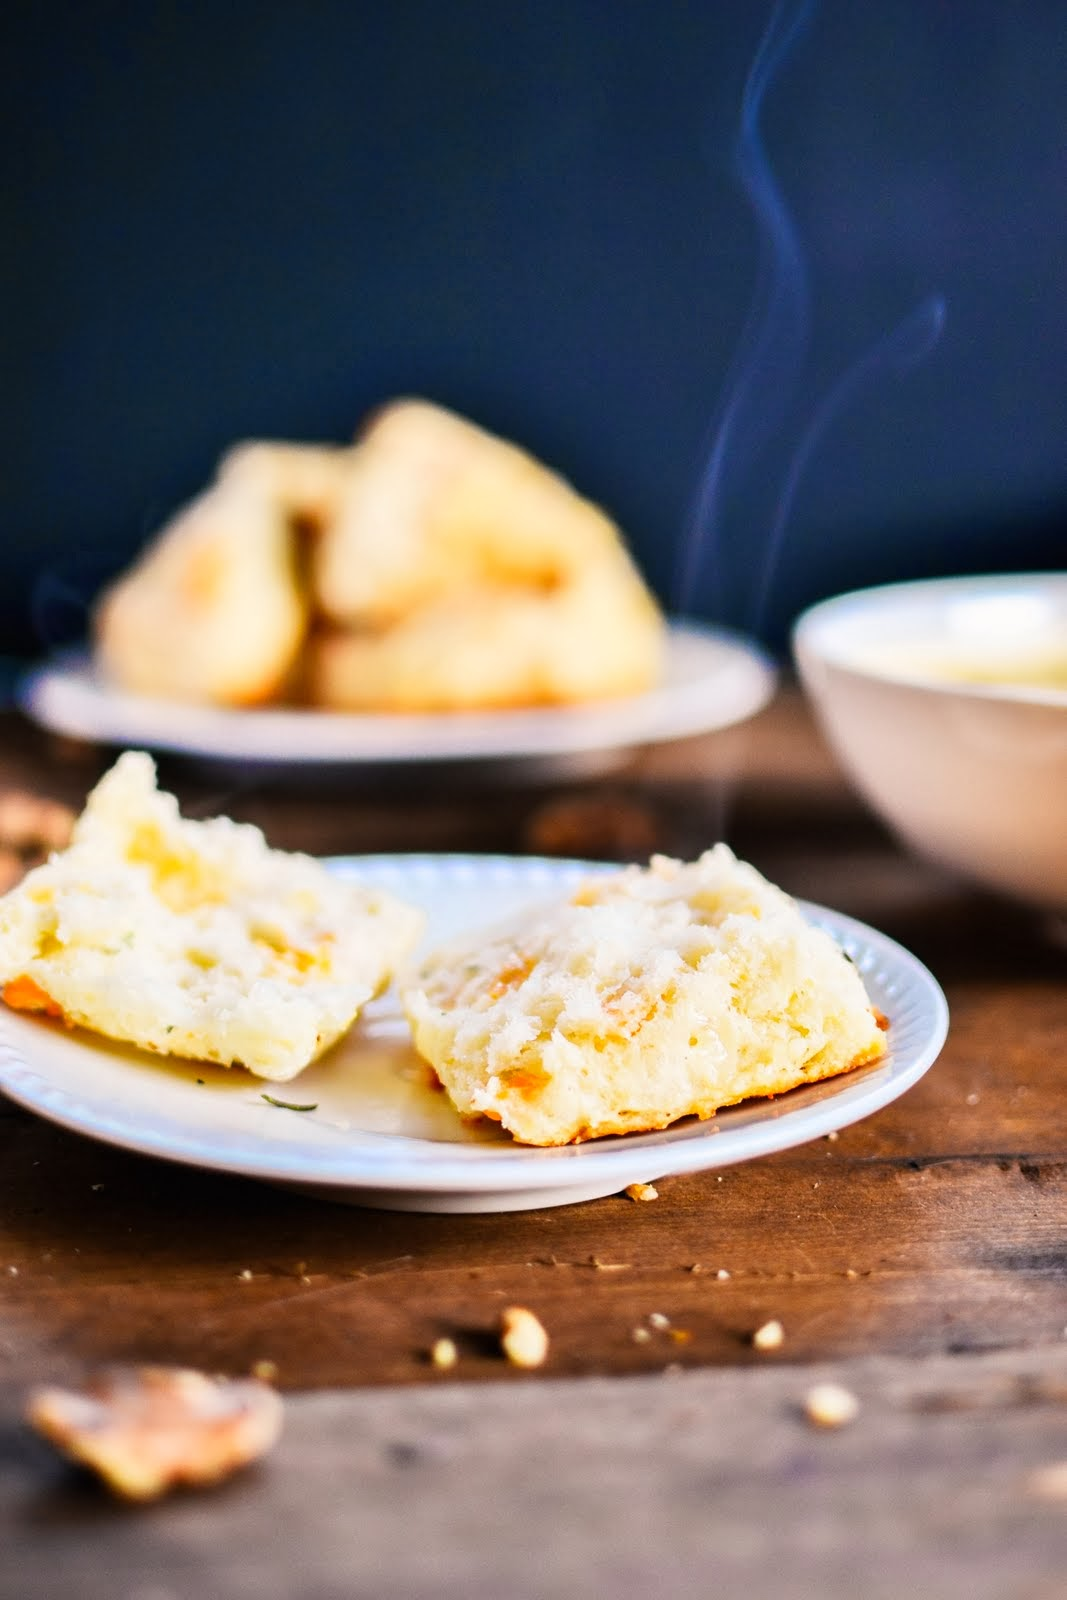 squash+soup+and+cheddar+biscuits-39.jpg